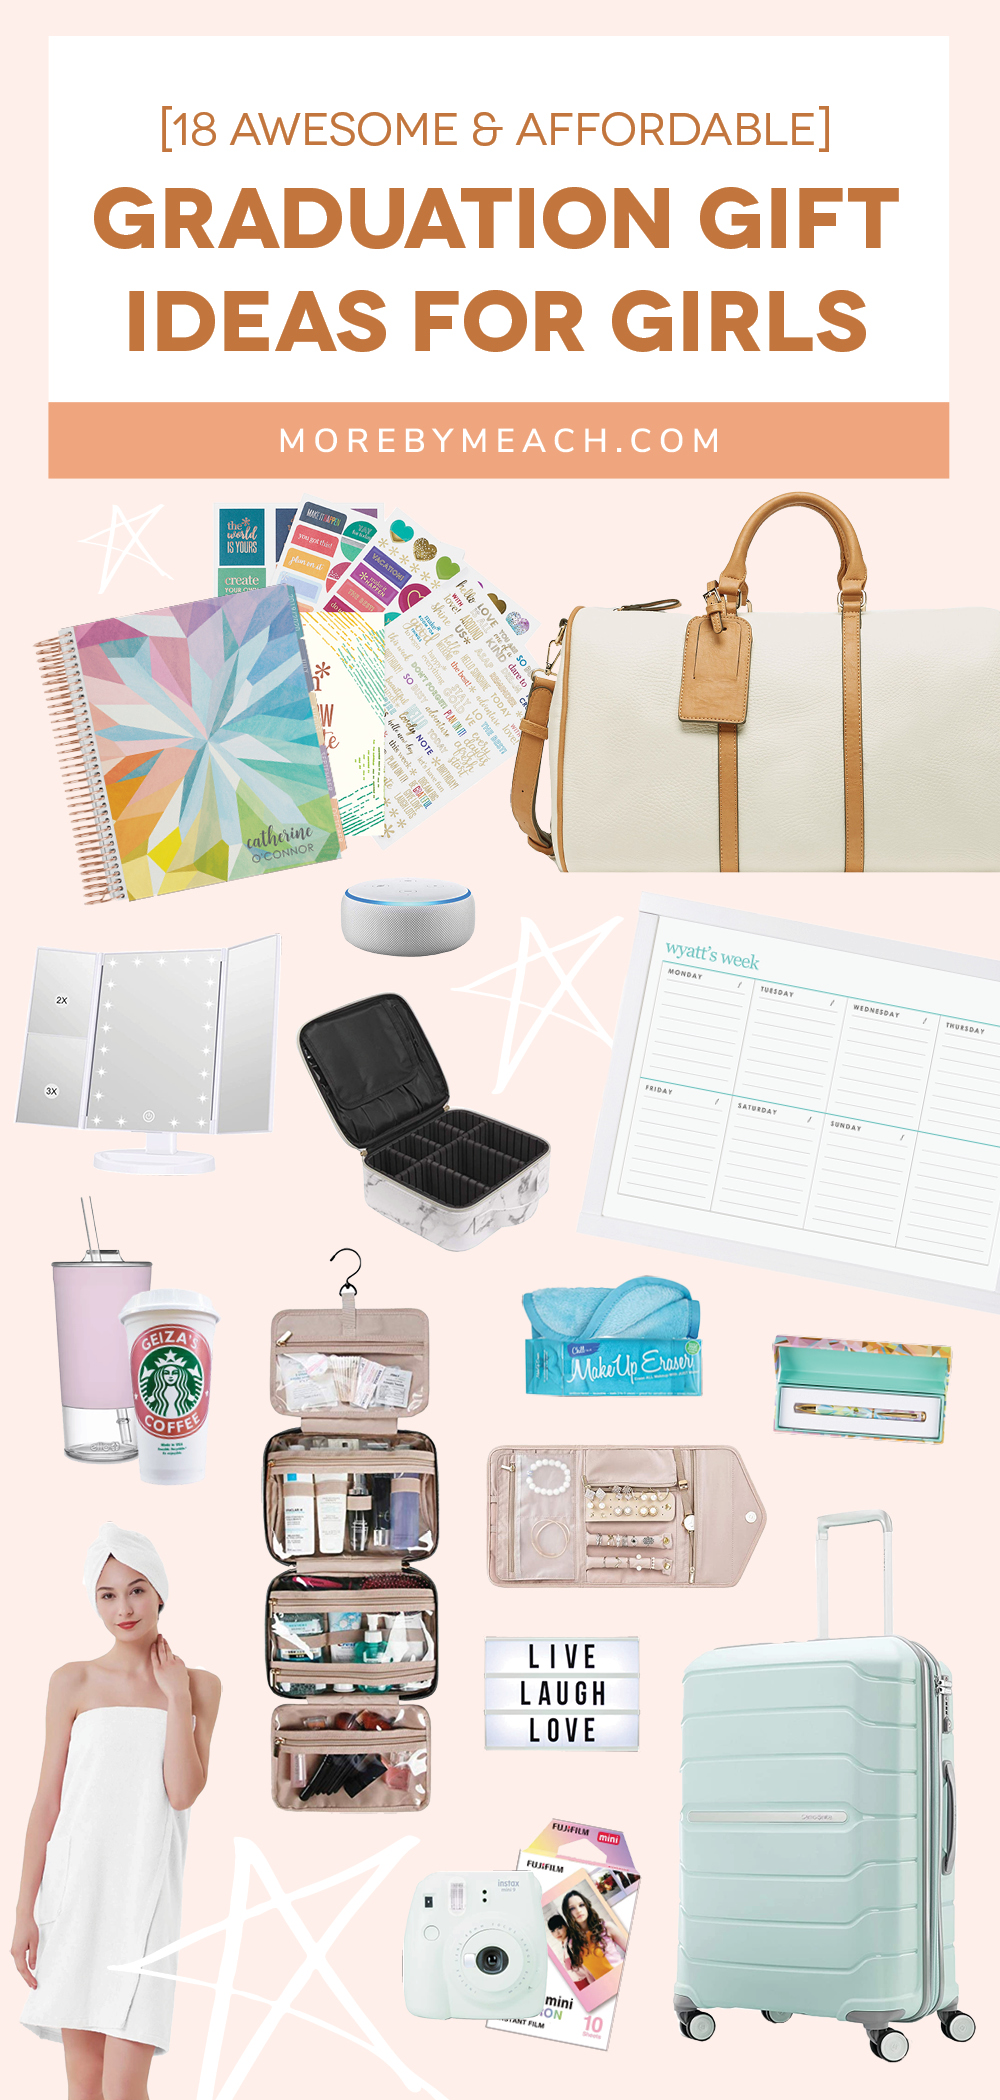 18 Cute And Affordable Graduation Gift Ideas For Girls More By Meach